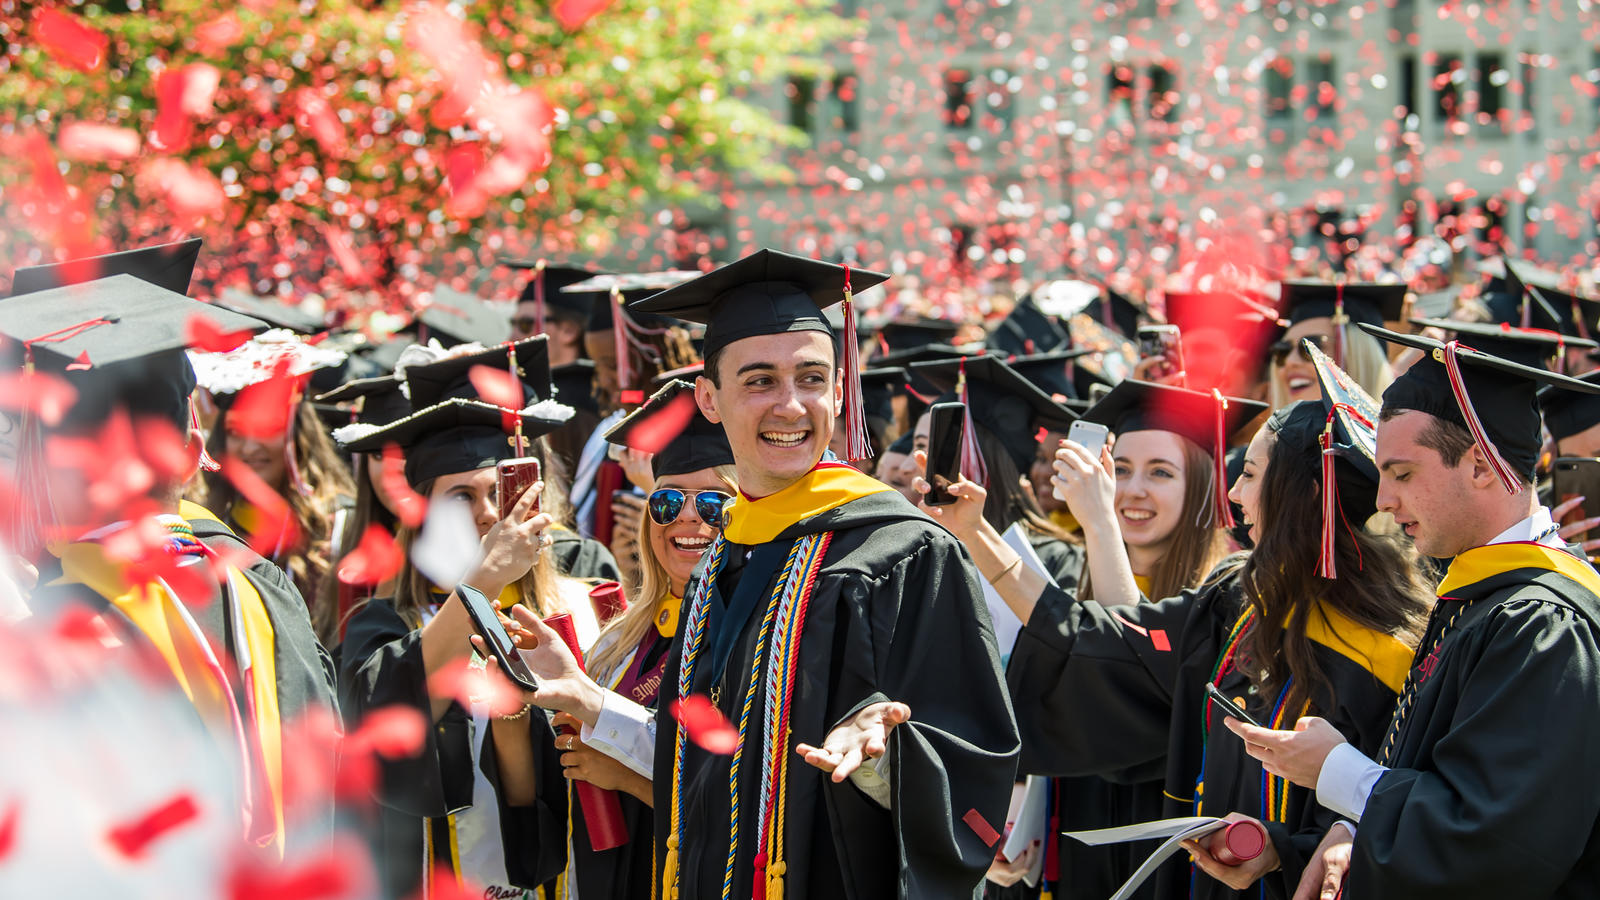 A graduate stands at commencement while confetti falls around him